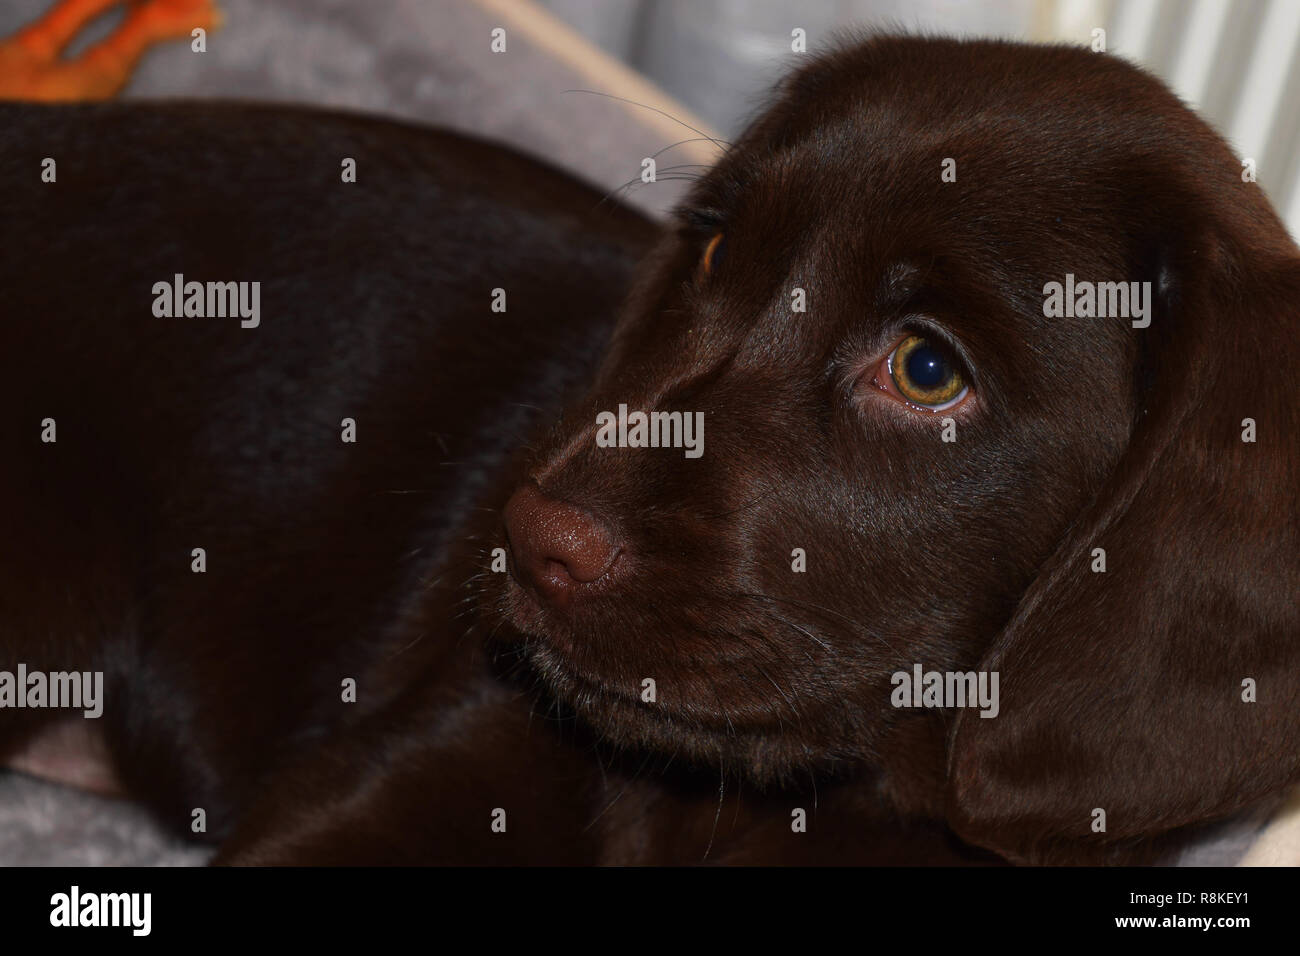 puppy of a chocolate brown labrador looks curiously sideways close up view, chocolate labrador retriever puppy male portrait studio shot - Stock Image